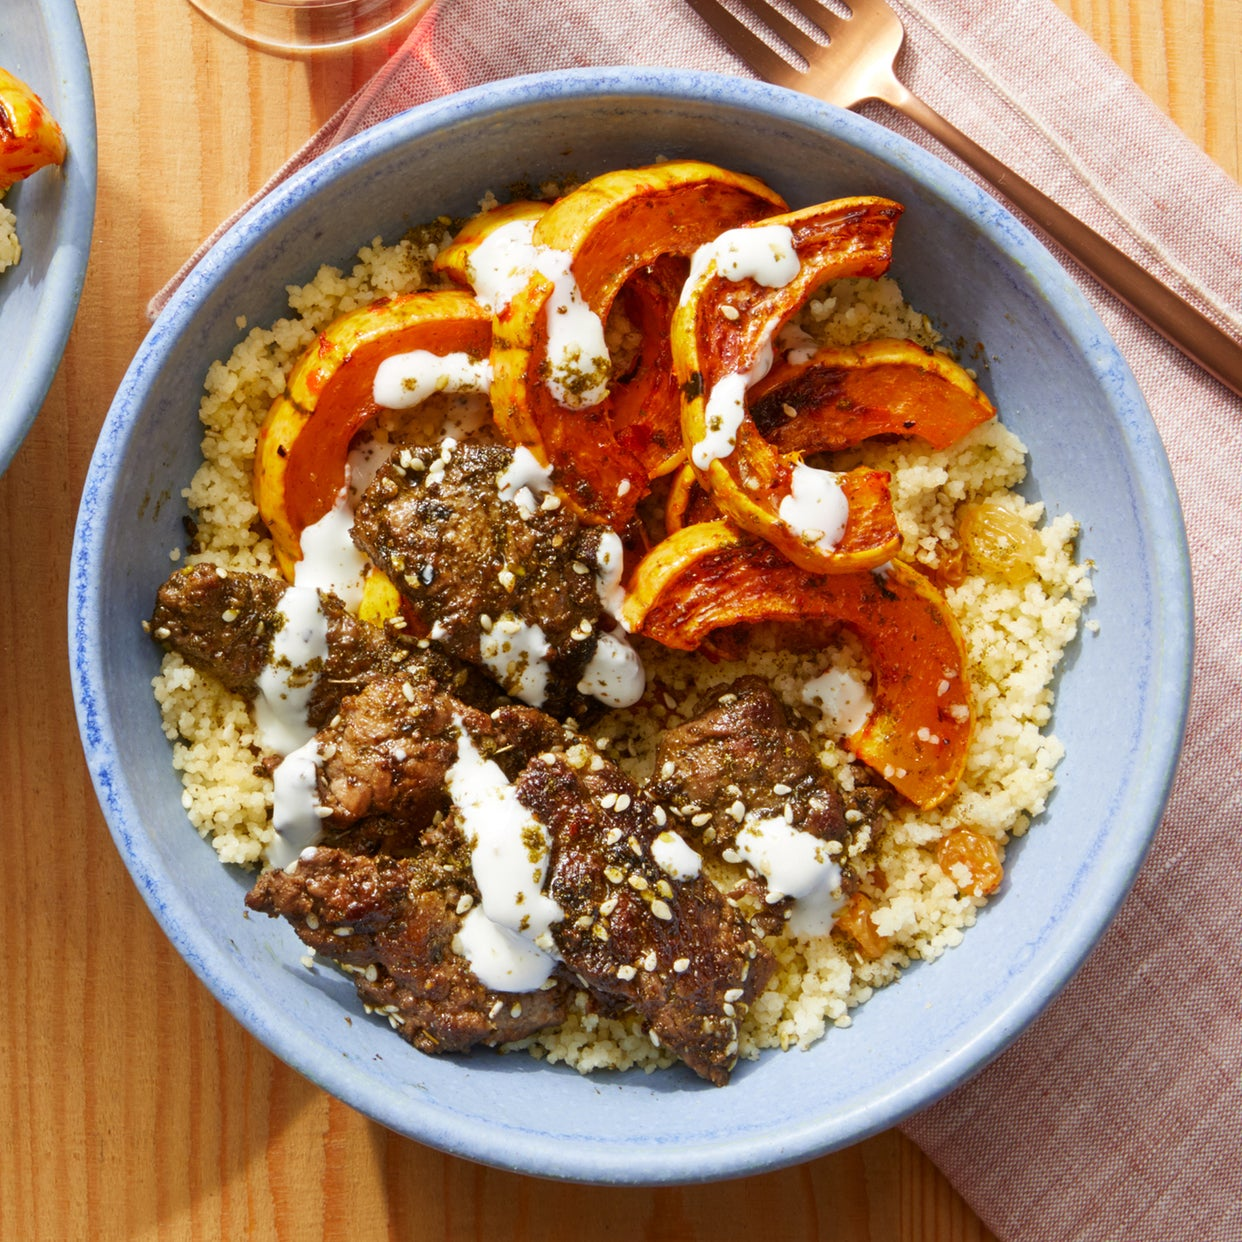 Spiced Beef & Couscous with Roasted-Harissa Squash